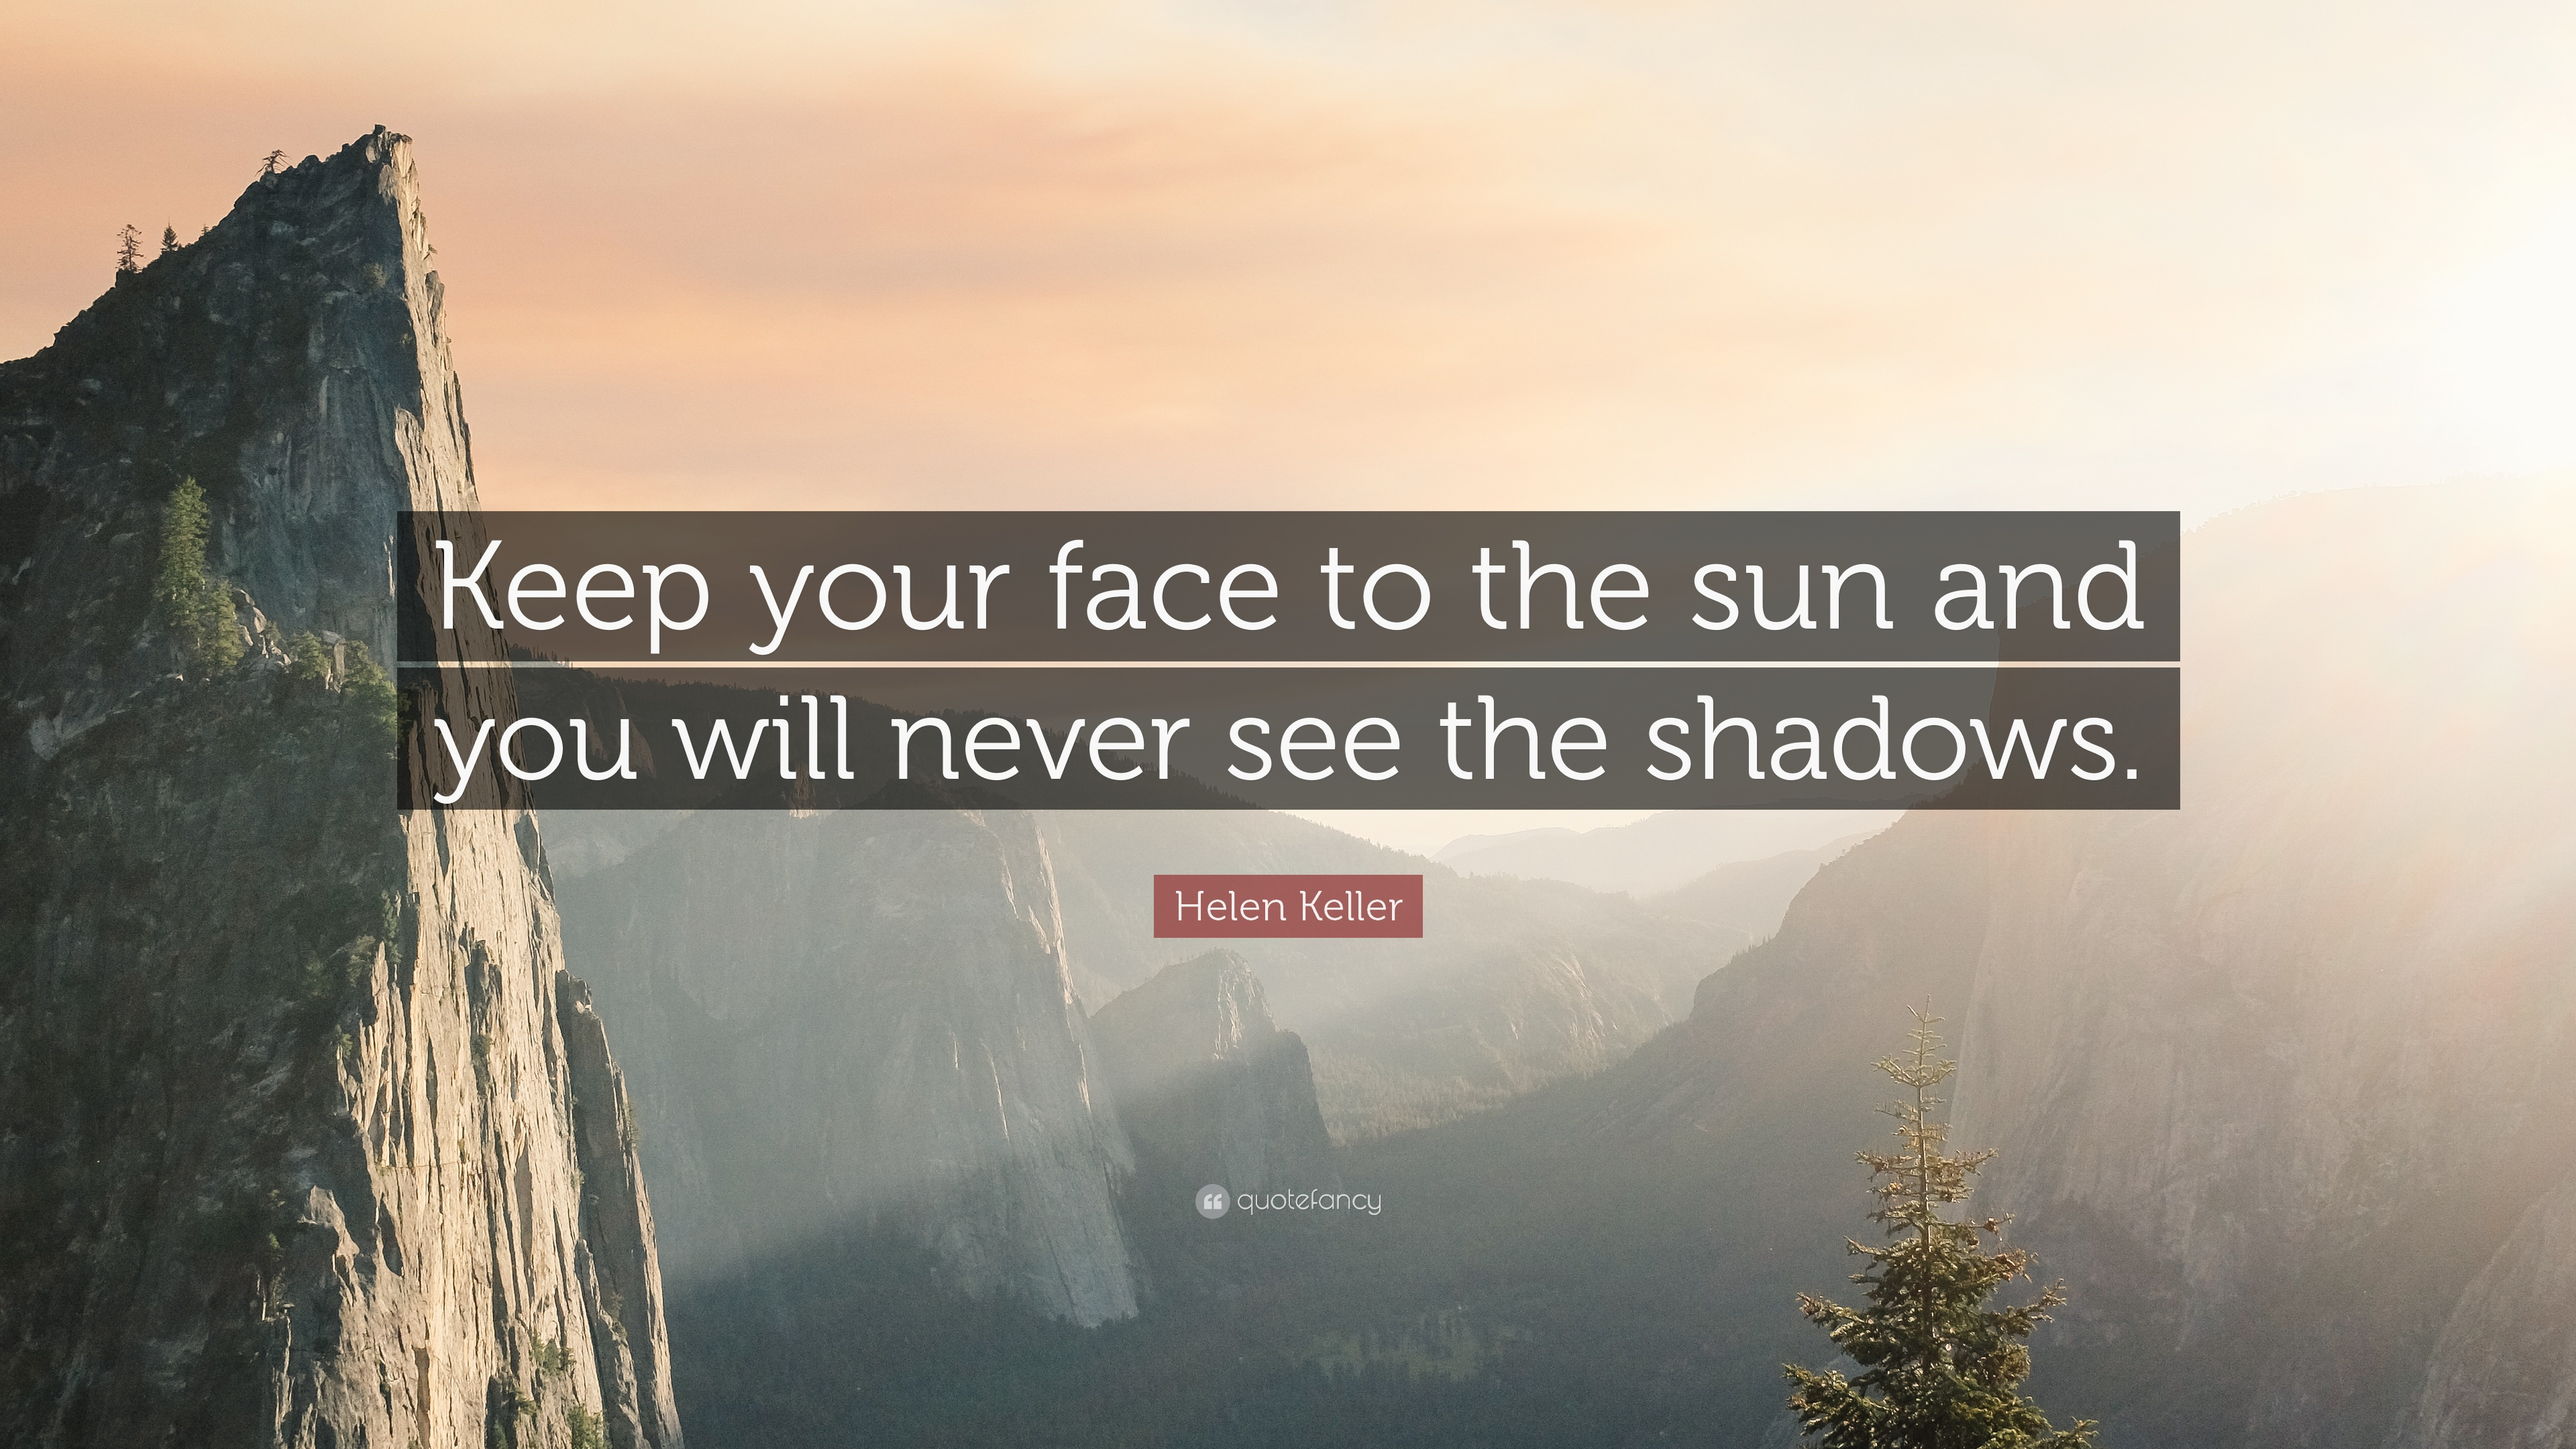 Helen Keller Quote Keep Your Face To The Sun And You Will Never